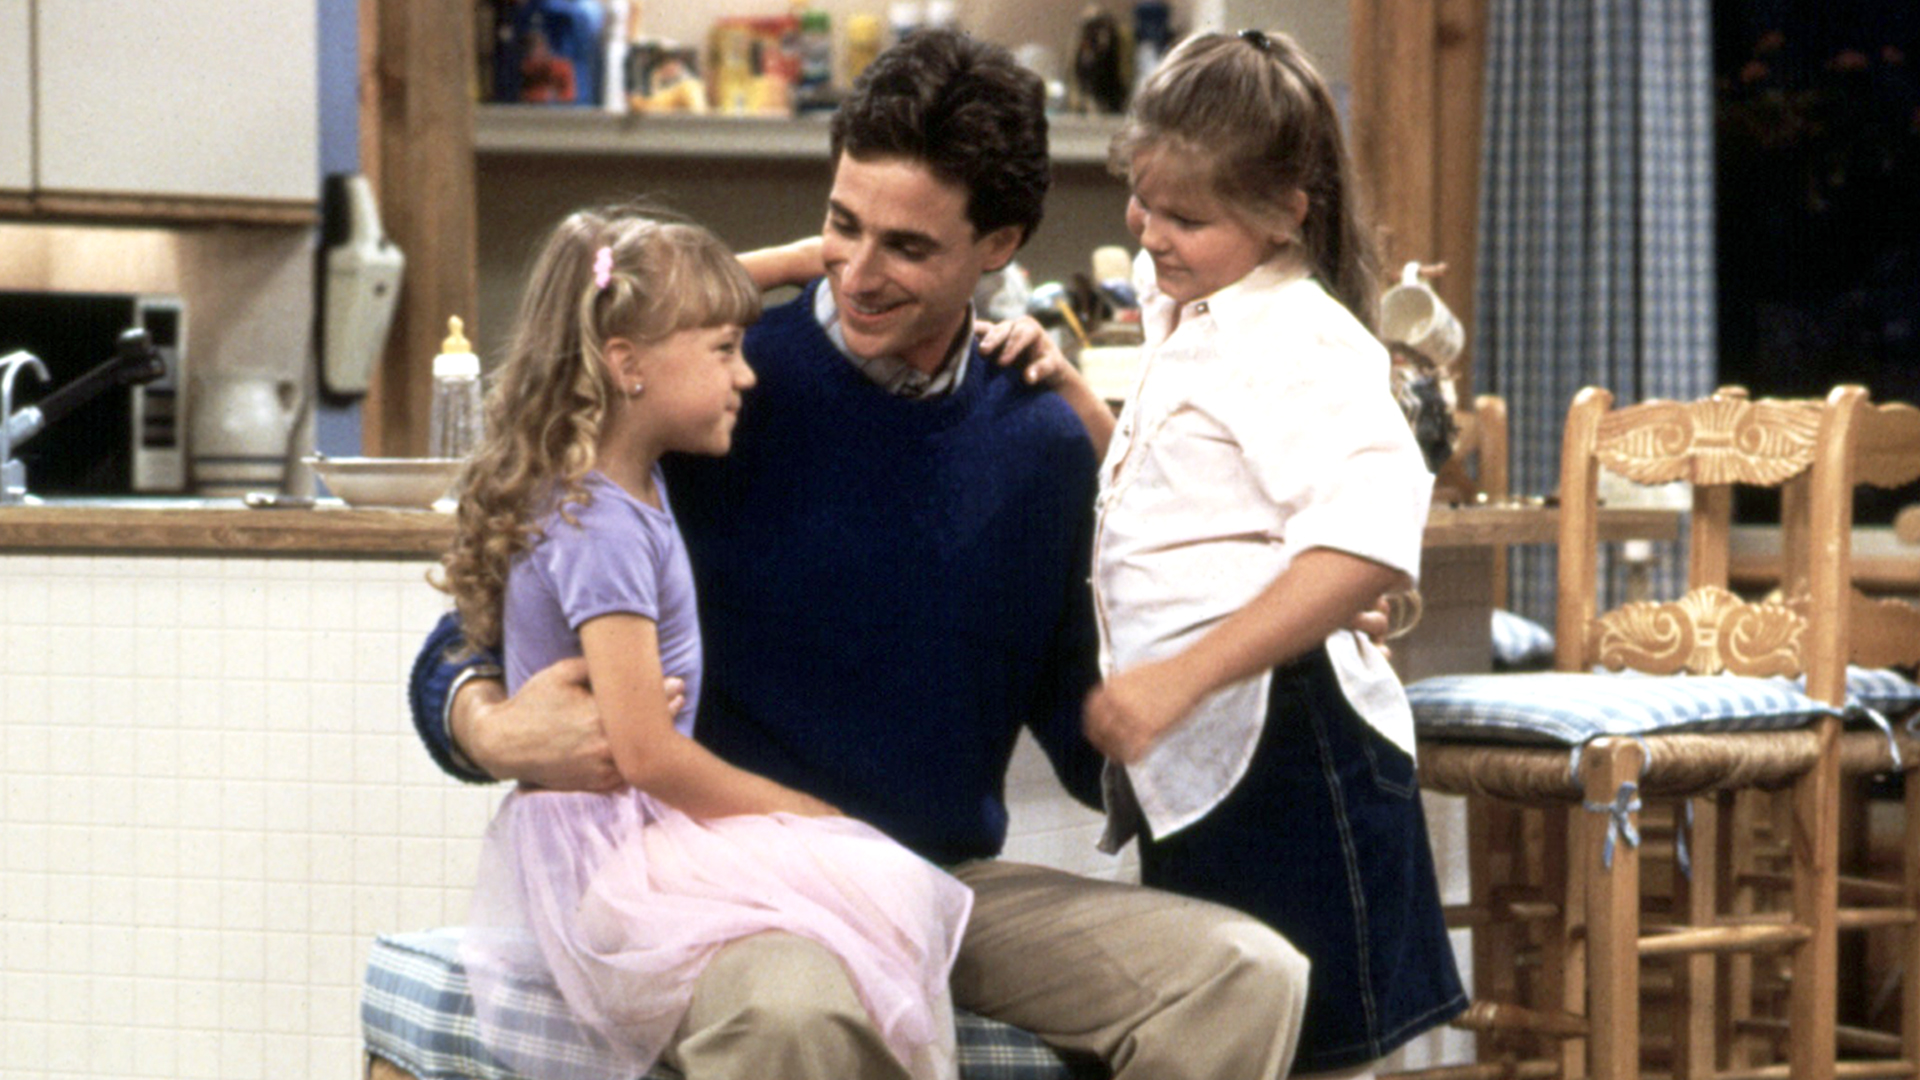 Masculinity according to Full House